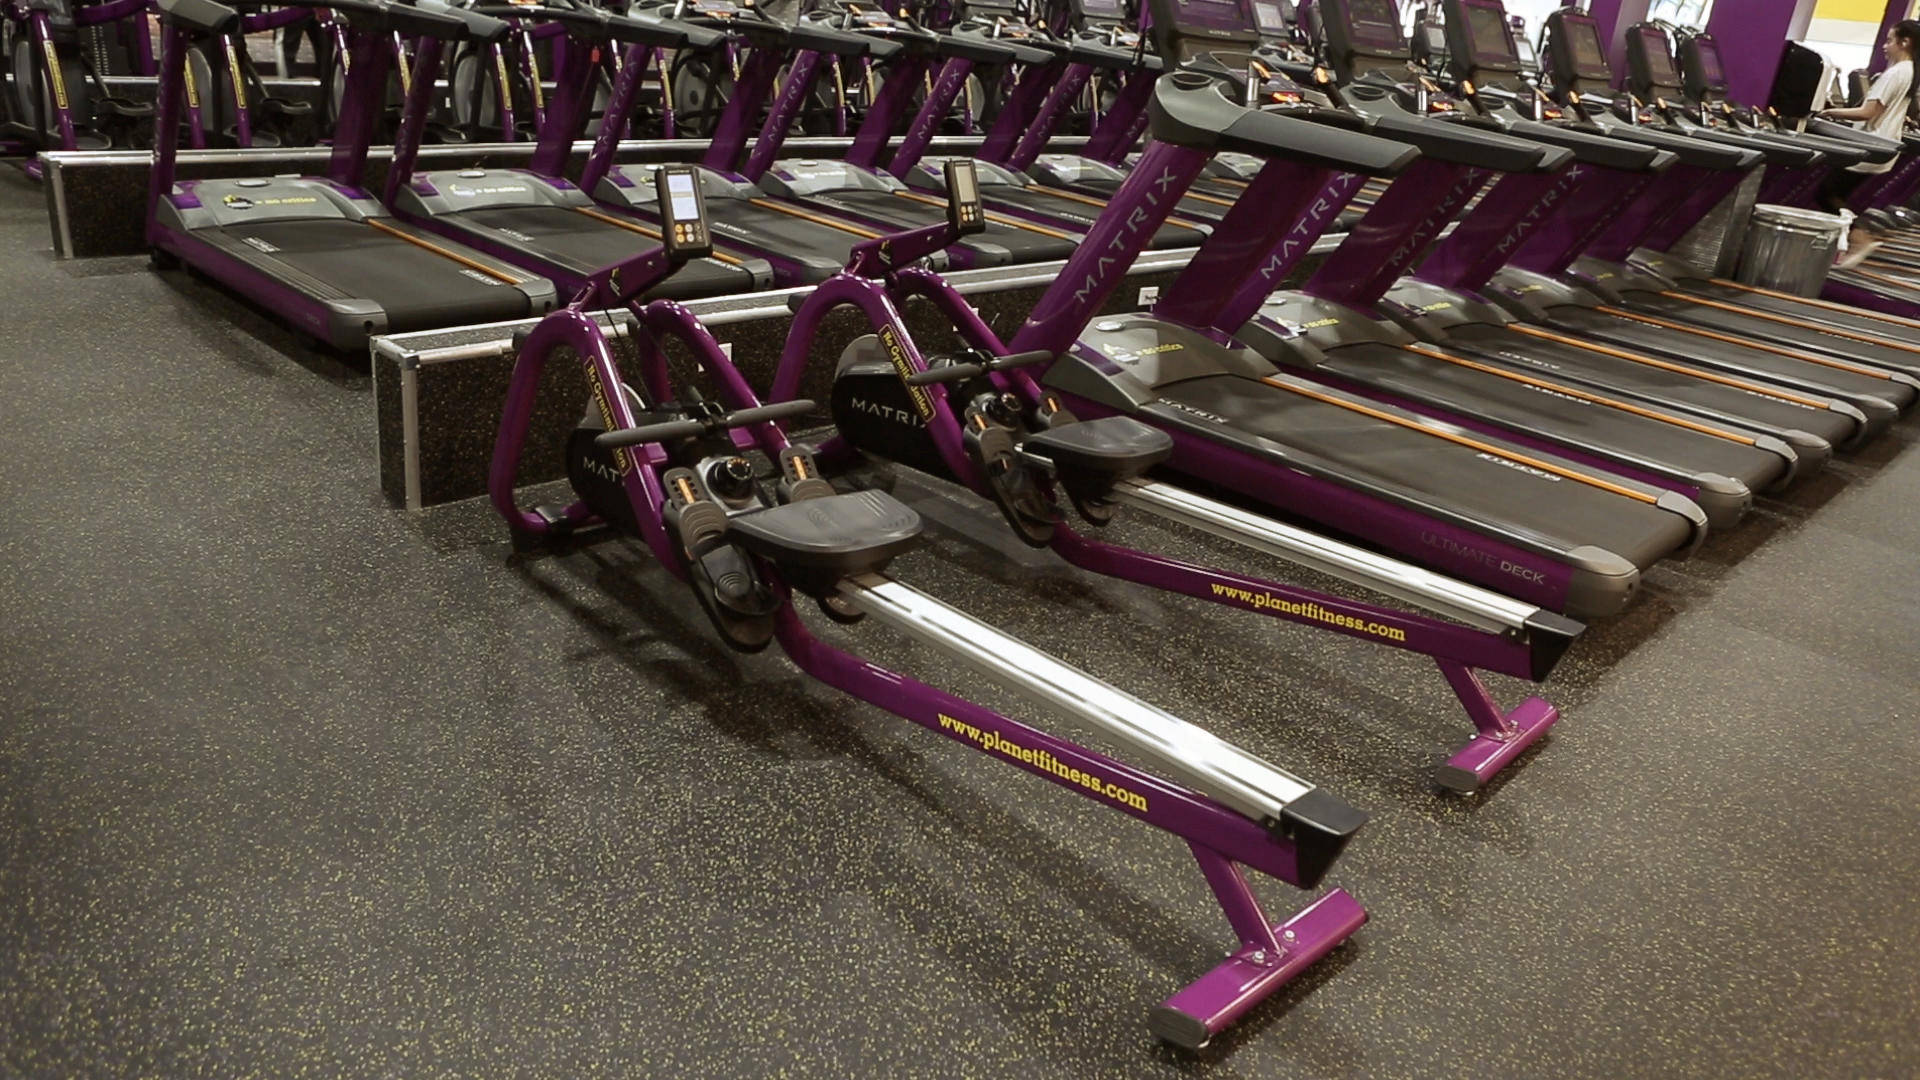 Gym in Fairfield NJ  461 US Hwy 46  Planet Fitness